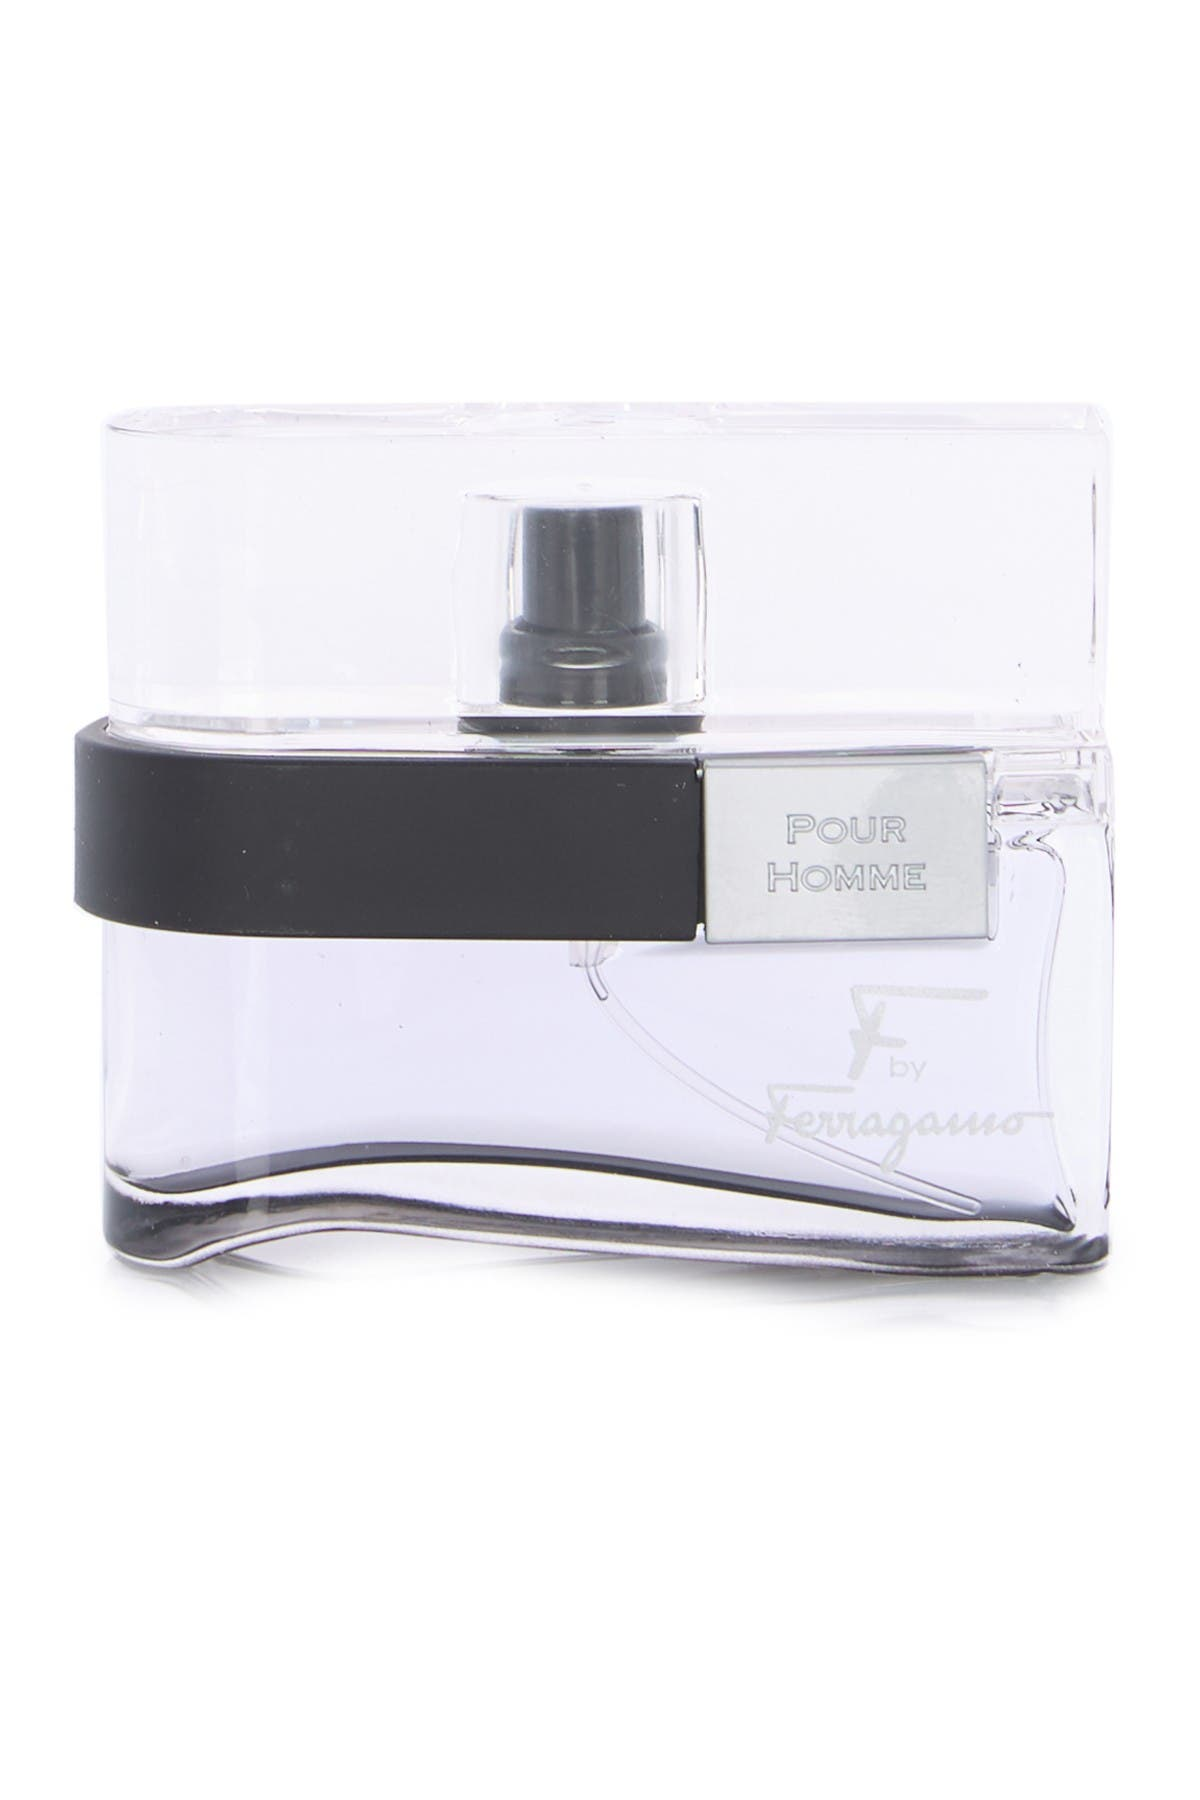 Image of Salvatore Ferragamo F by Ferragamo Black Cologne Eau De Toilette Spray - 30 ml.